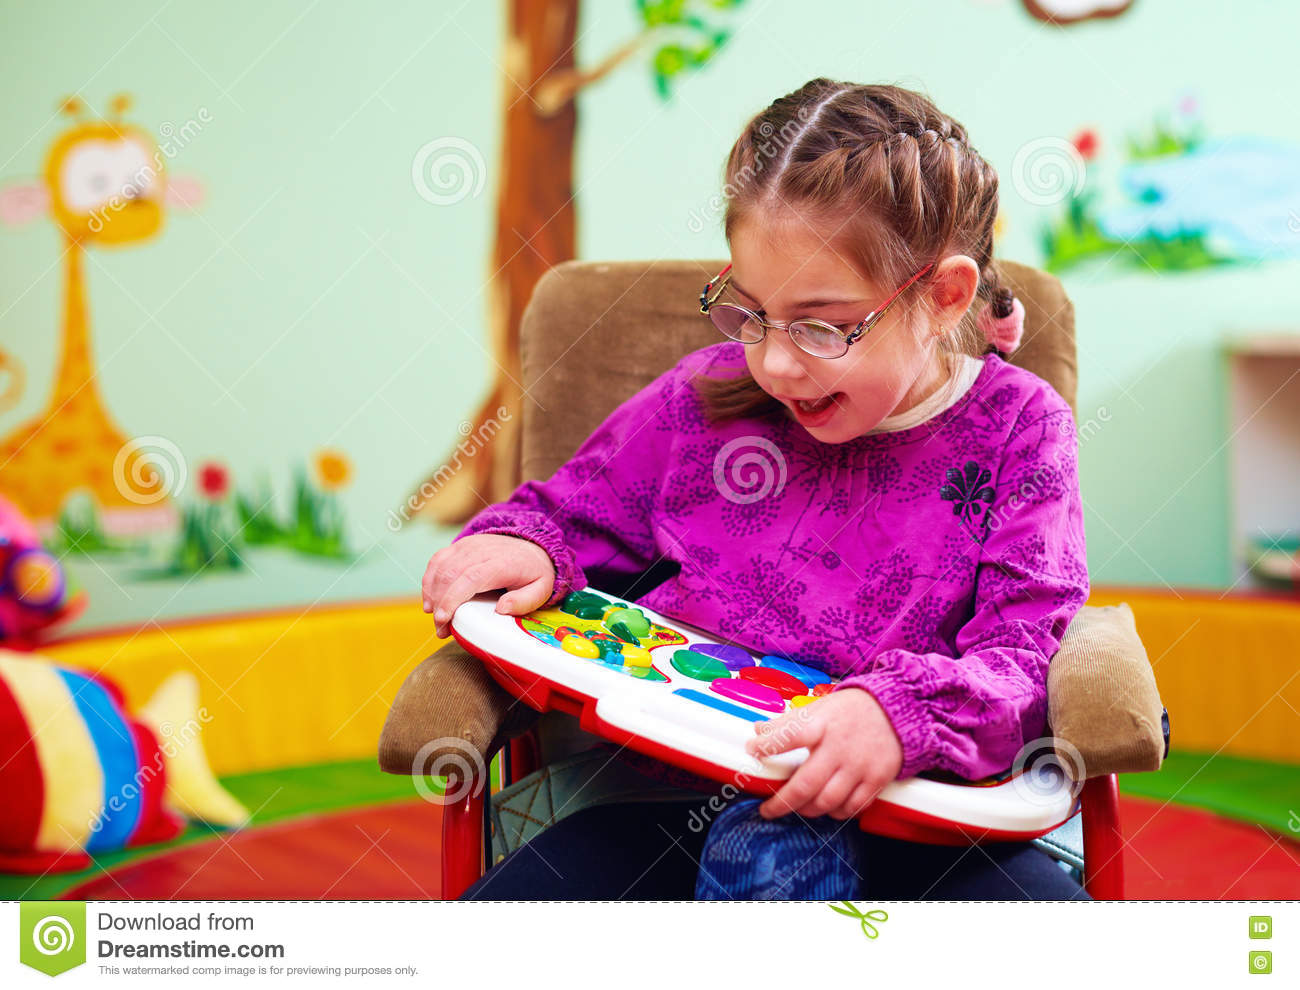 Special Toys For Girls : Cute girl in wheelchair playing with developing toy